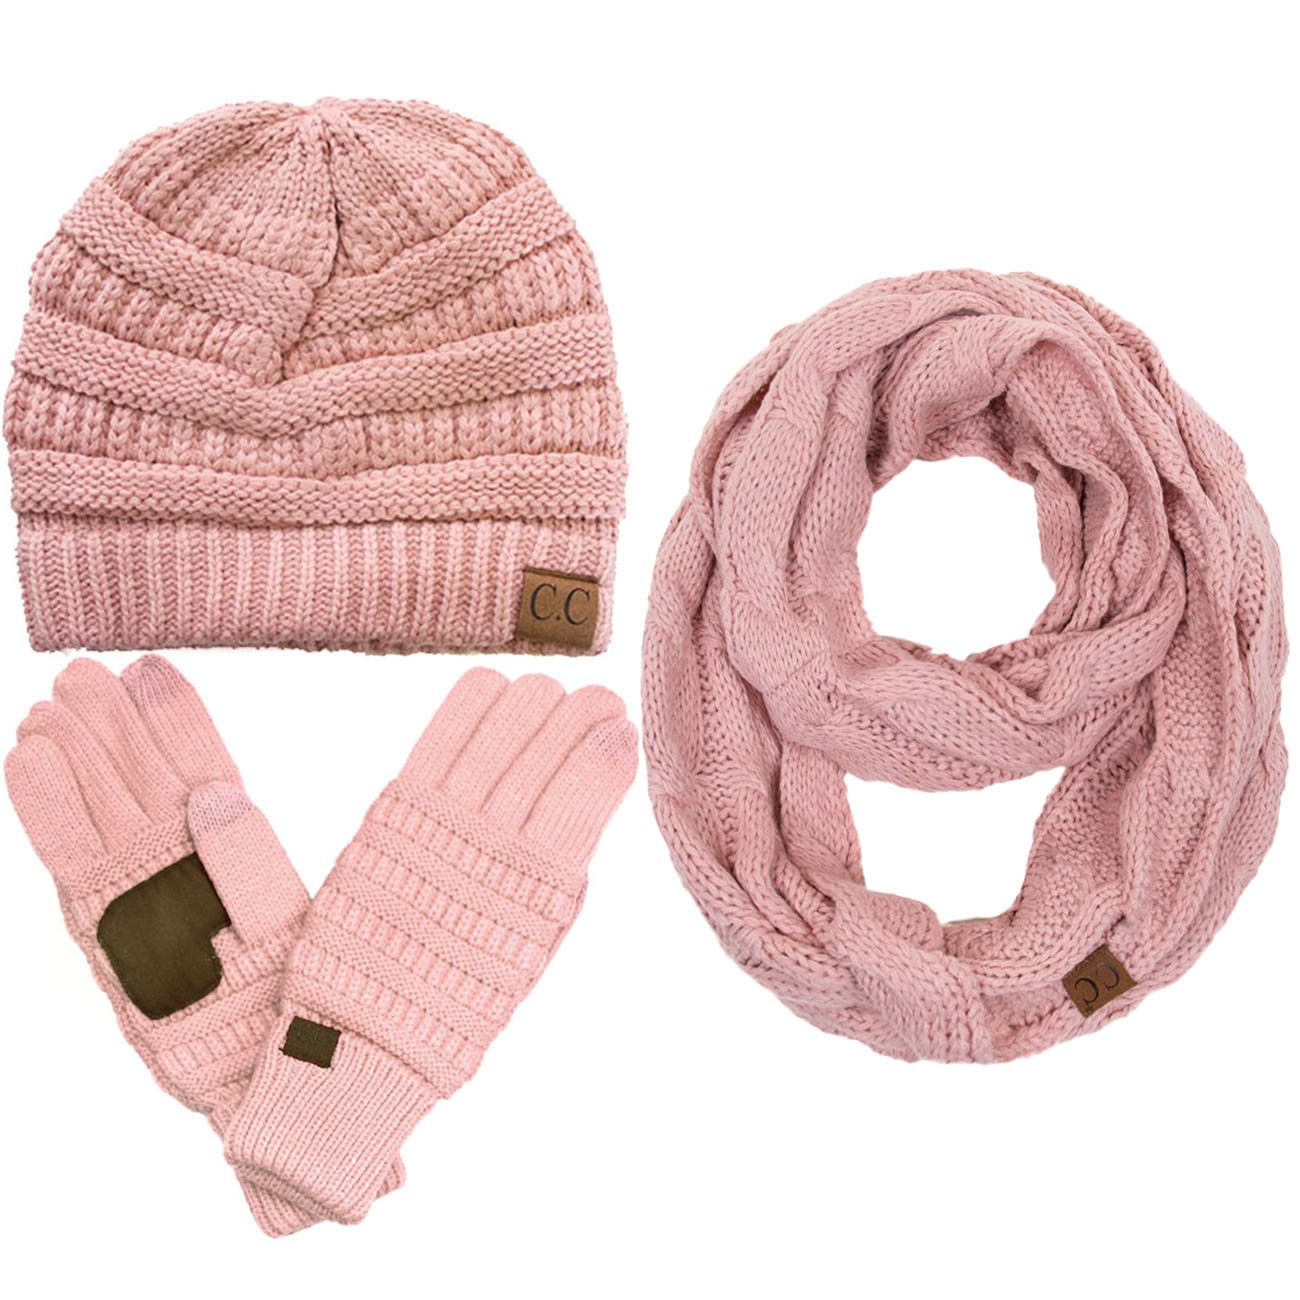 67ecf506c93911 CC 3pc set Warm Chunky Soft Stretch Cable Beanie, Gloves and Scarves ...